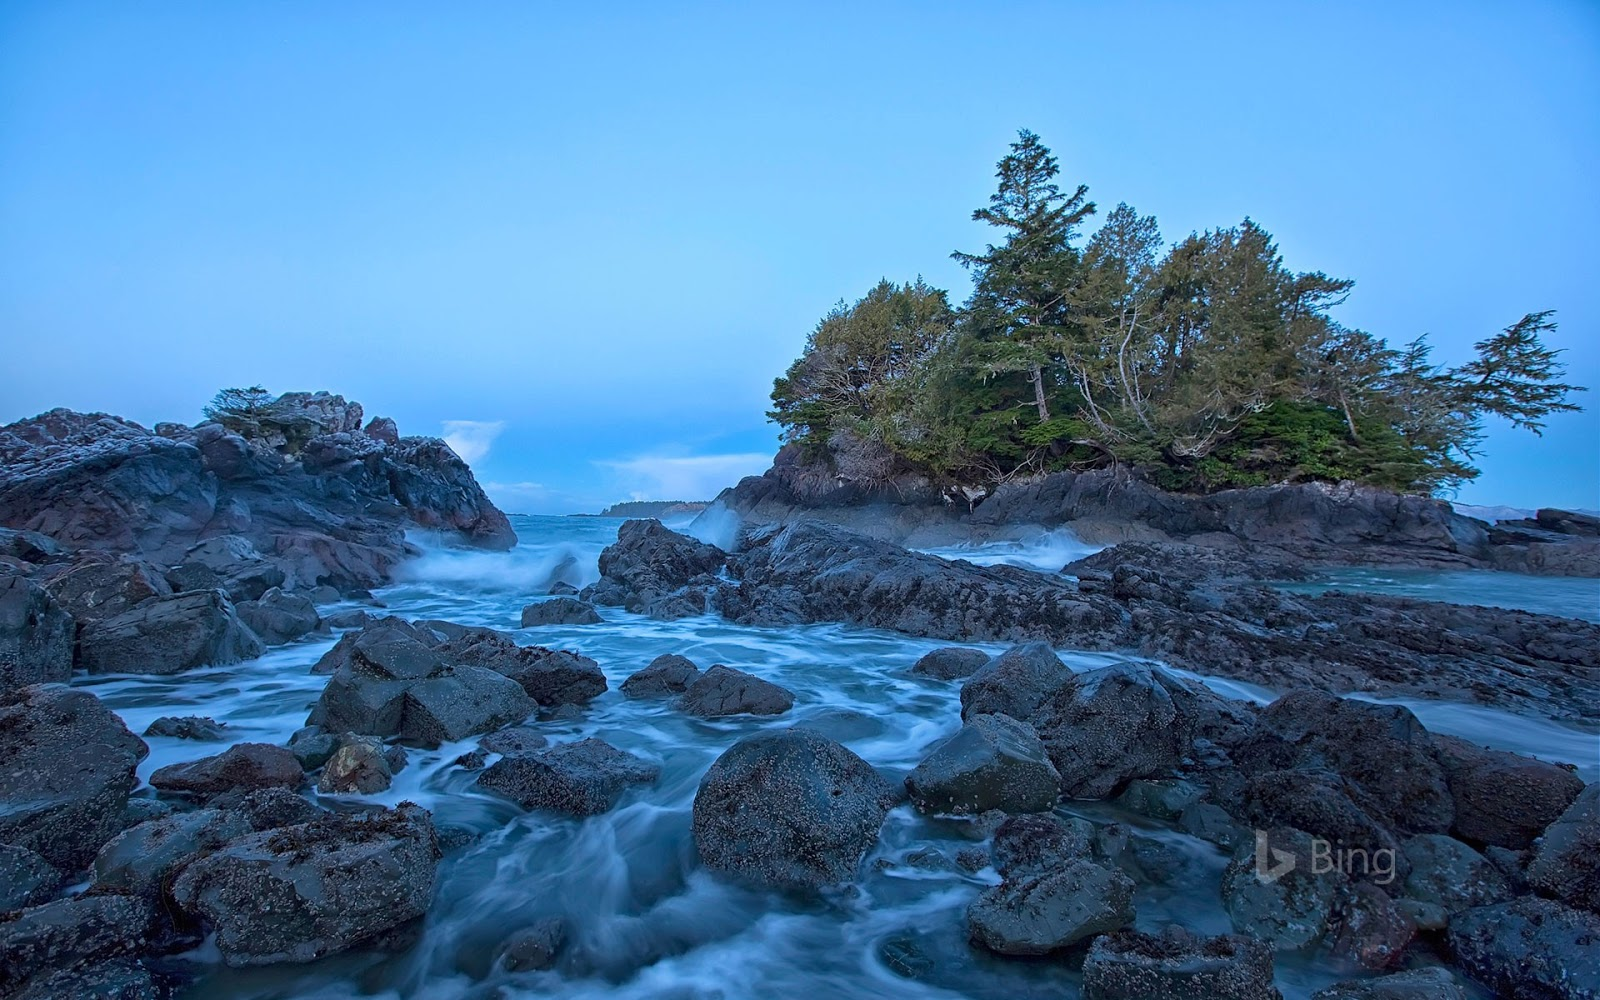 Shoreline near Tofino on Vancouver Island, British Columbia, Canada © Robert Postma/plainpicture